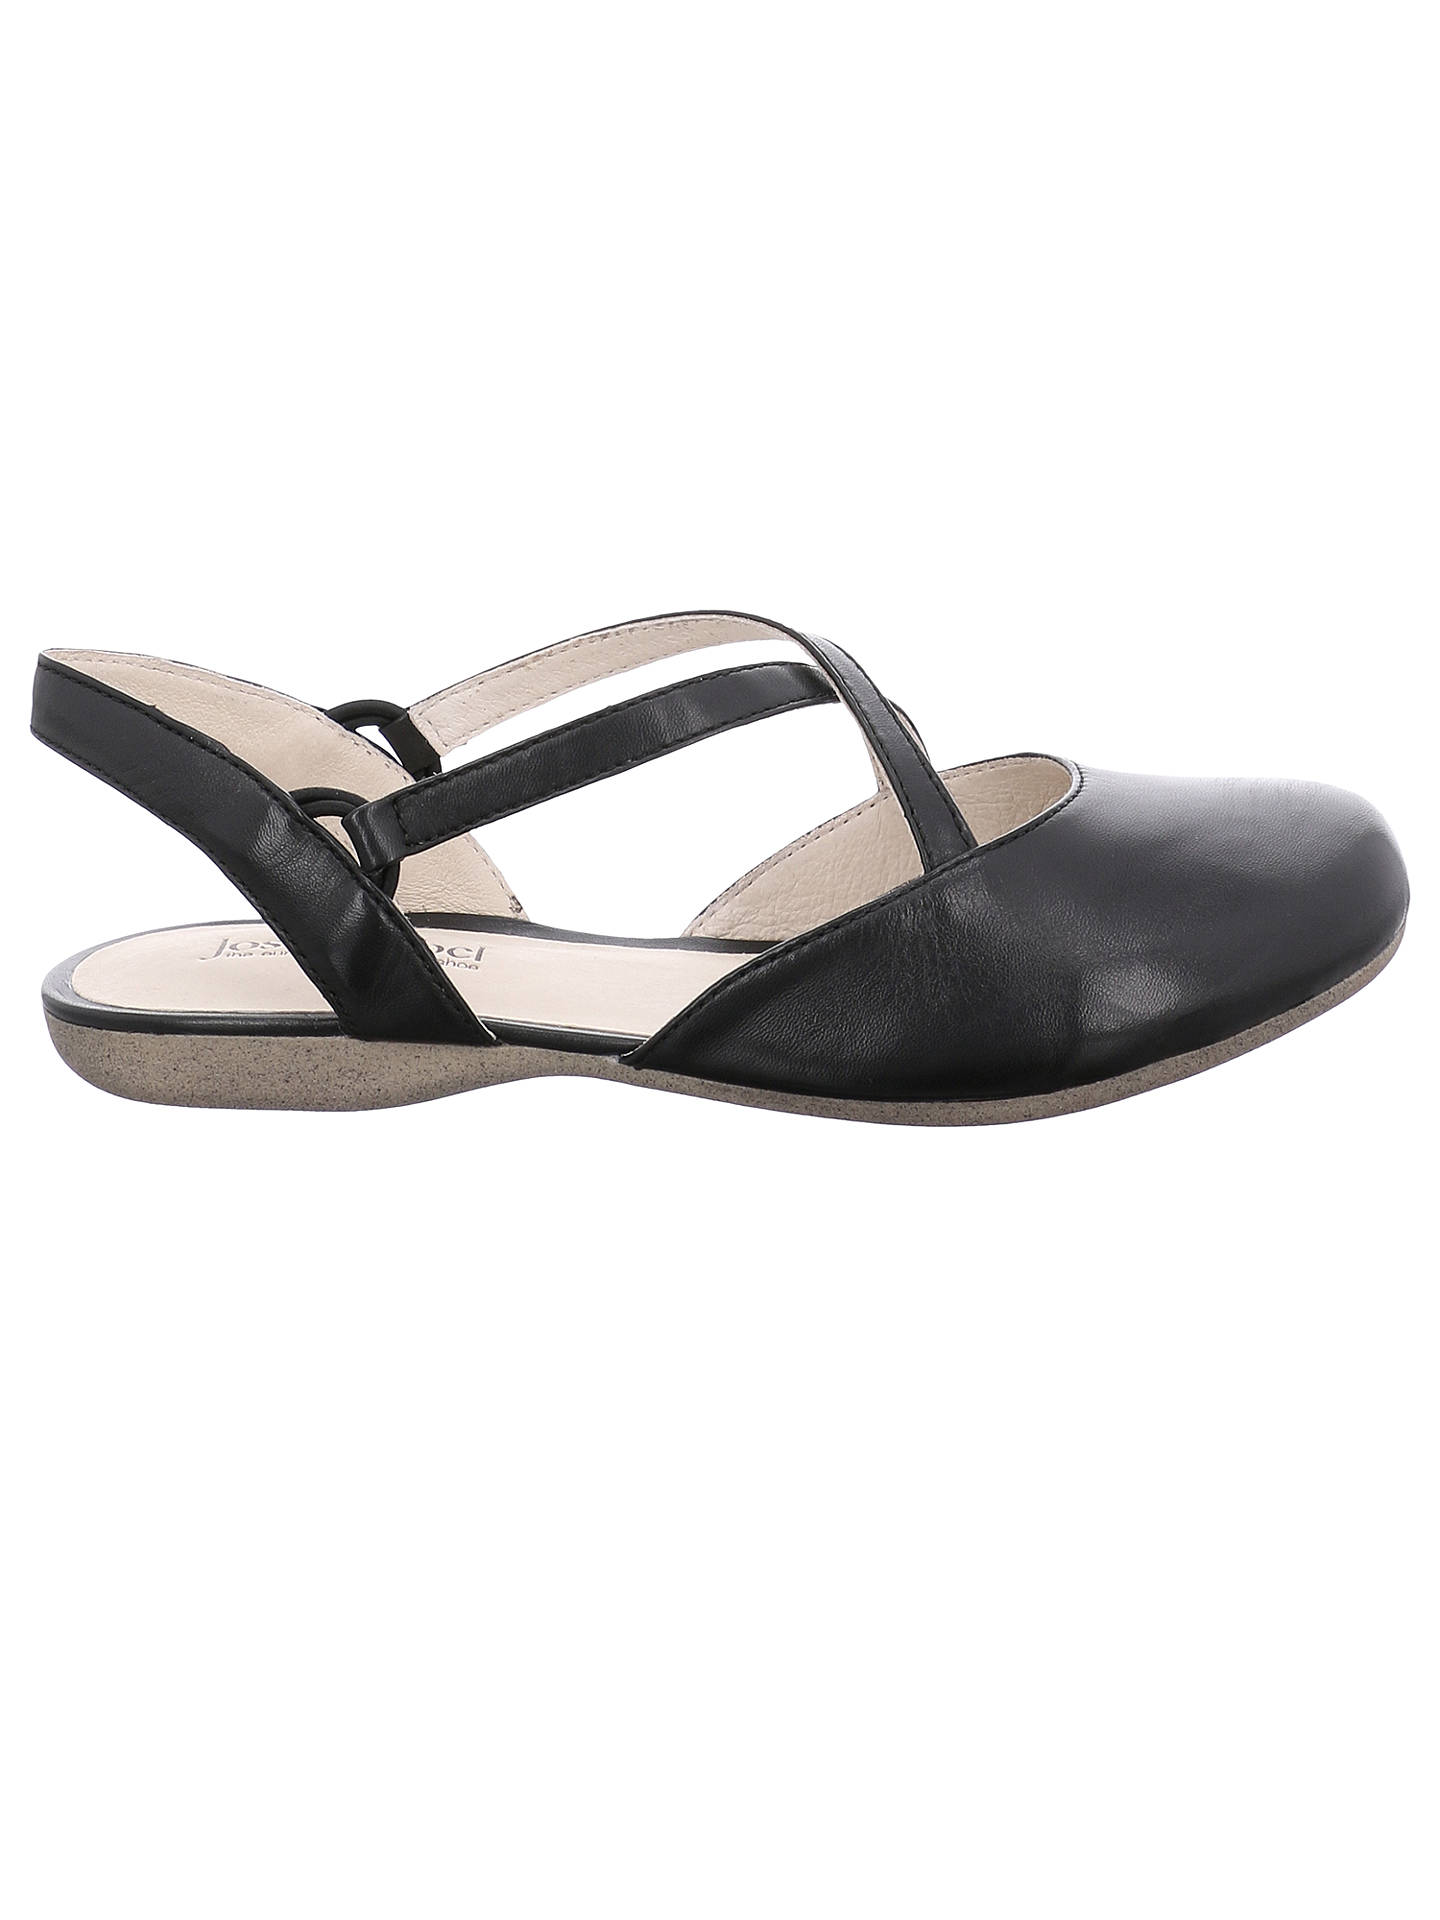 424c2b003830b Buy Josef Seibel Fiona 13 Cross Strap Pumps, Black Leather, 3 Online at  johnlewis ...